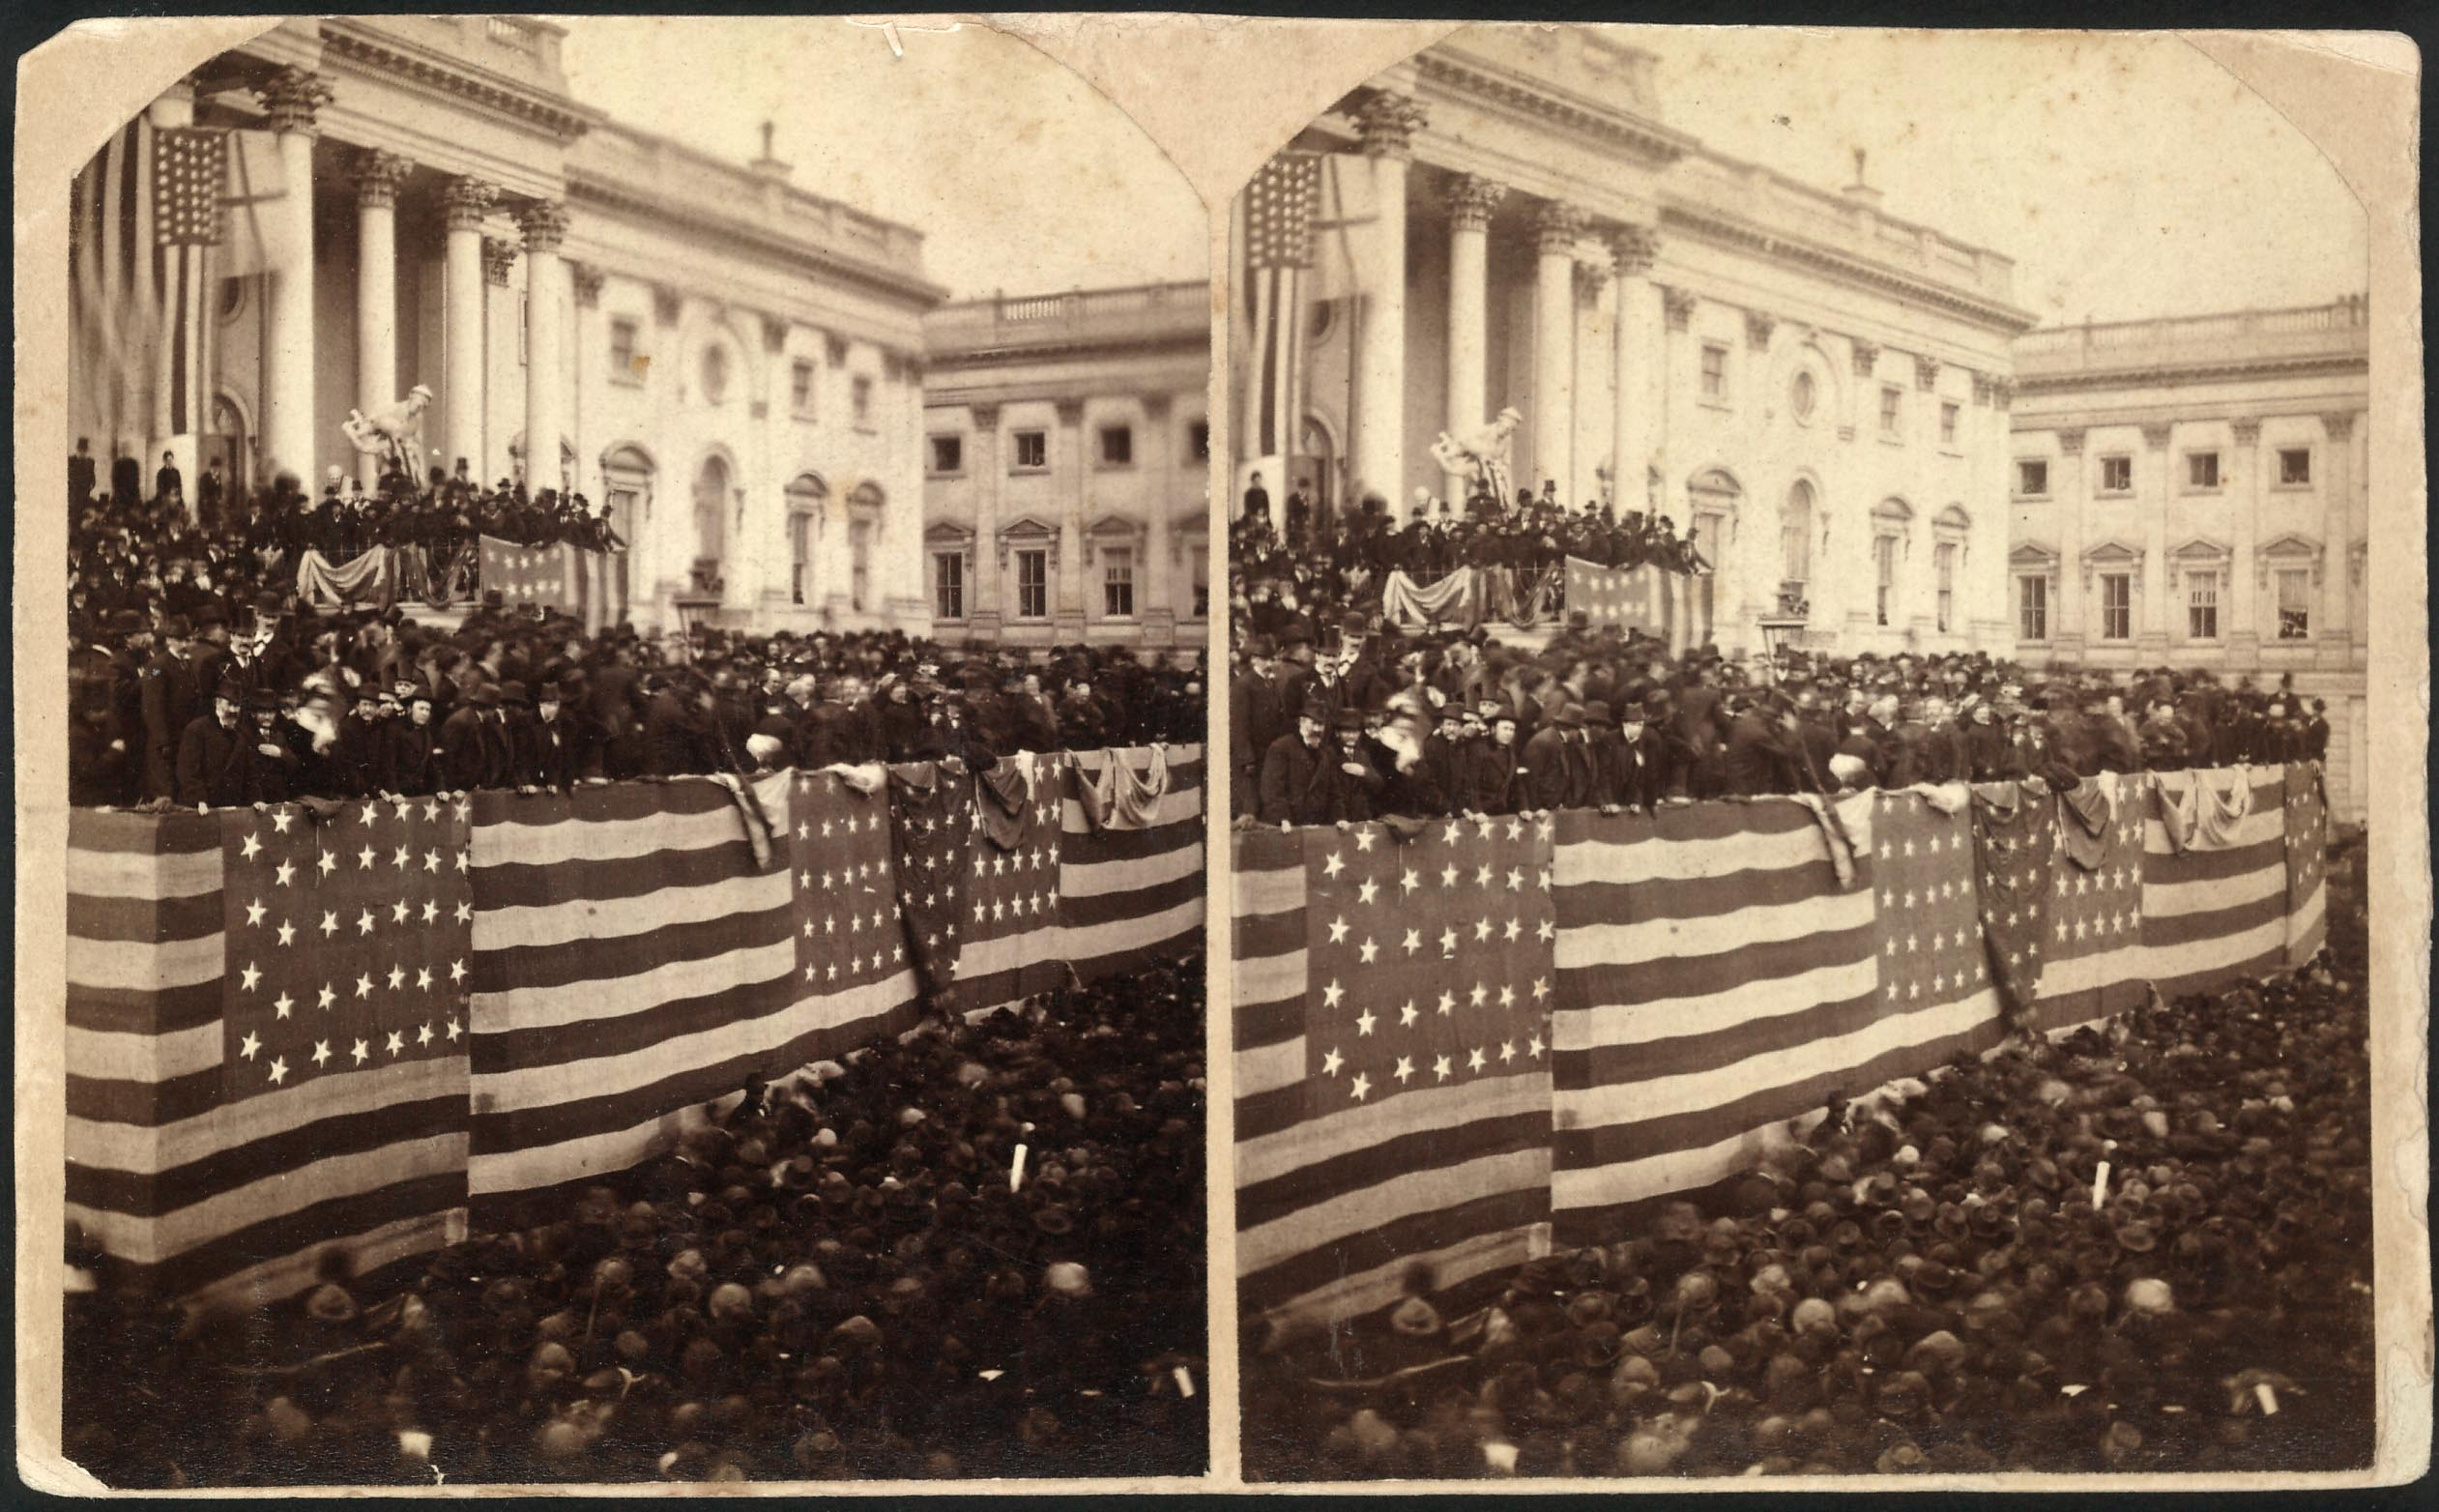 Stereograph photo shows Chief Justice Morrison R. Waite administers the oath of office to Rutherford B. Hayes on a flag-draped inaugural stand on the east portico of the U.S. Capitol, March 4, 1877.